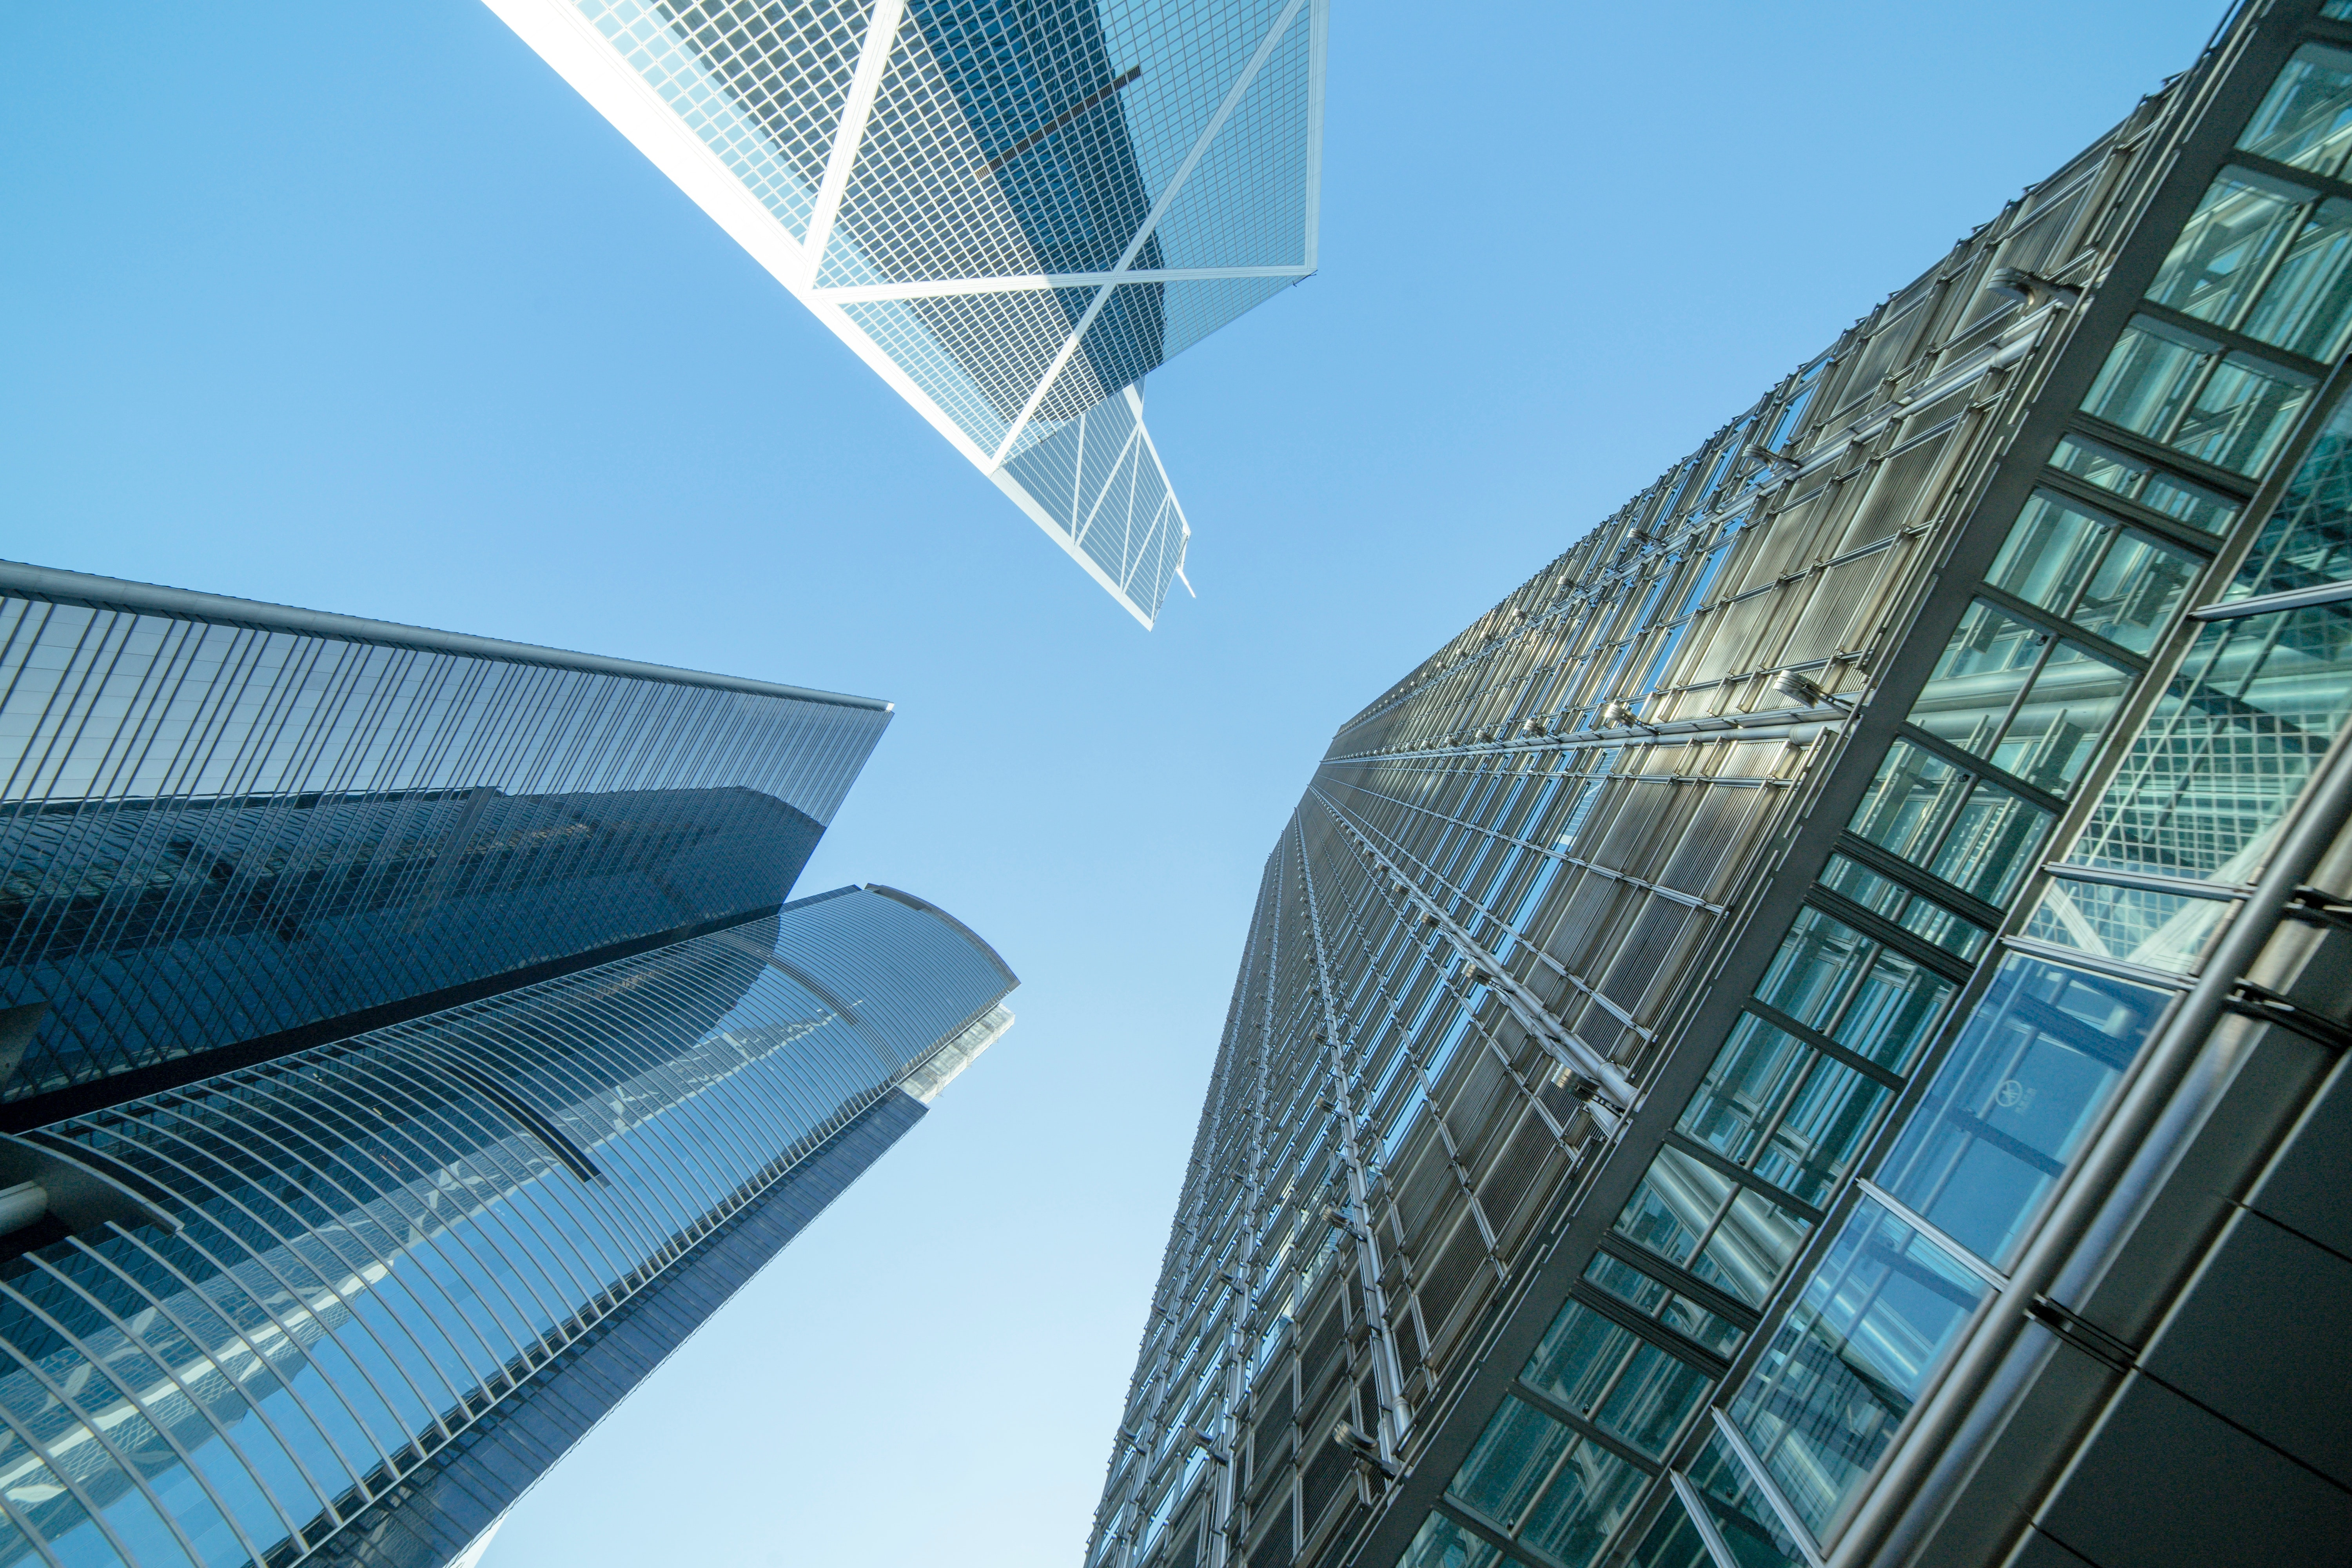 low angle tall buildings.